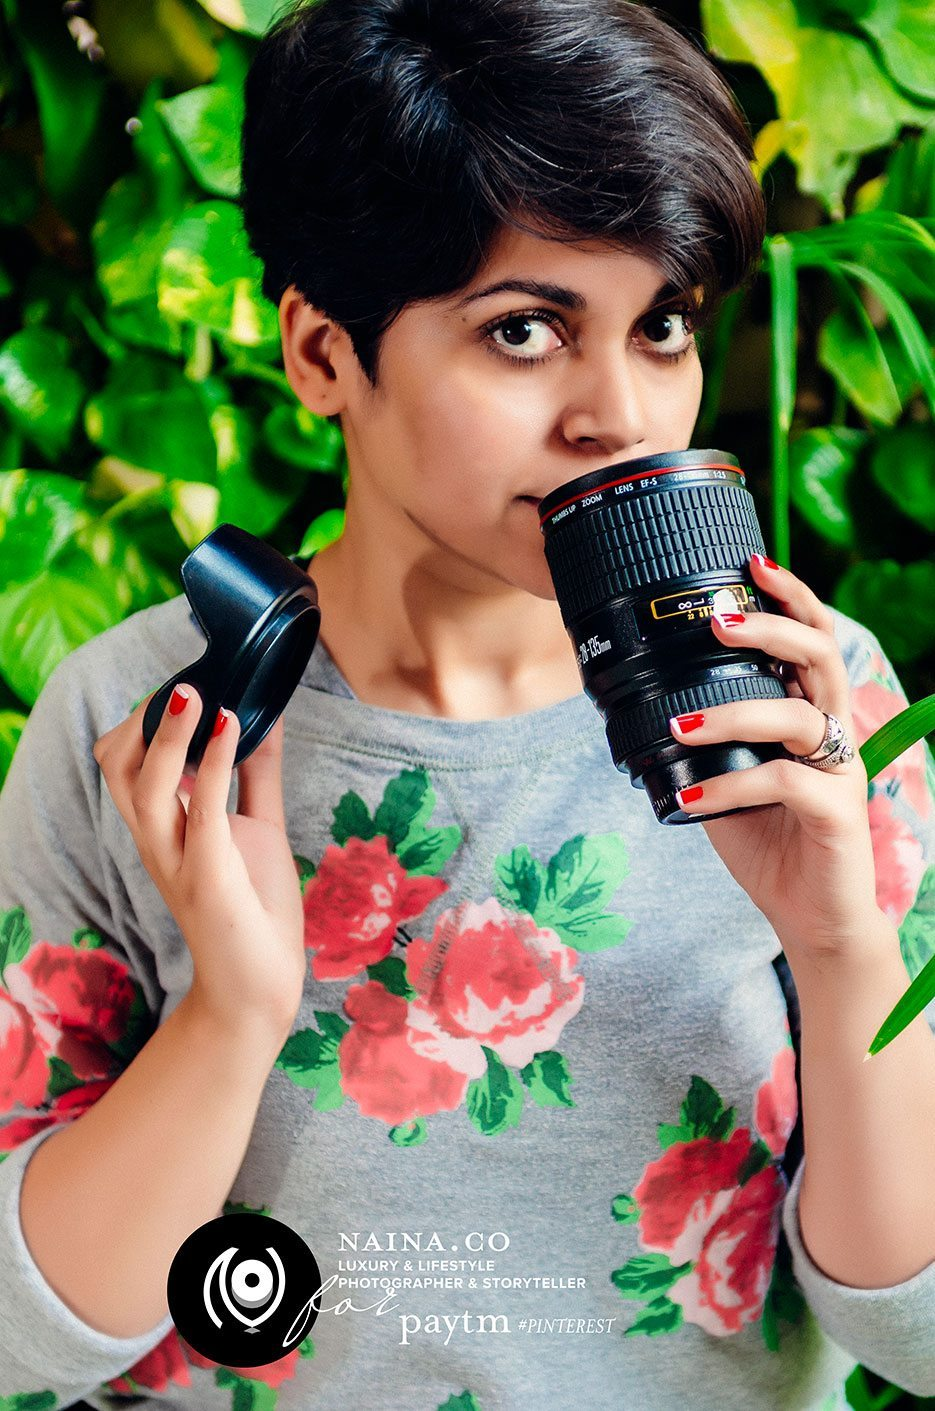 Naina.co-Raconteuse-Visuelle-Photographer-Storyteller-Luxury-Lifestyle-2014-NainaForPayTM-PayTM-Pinterest